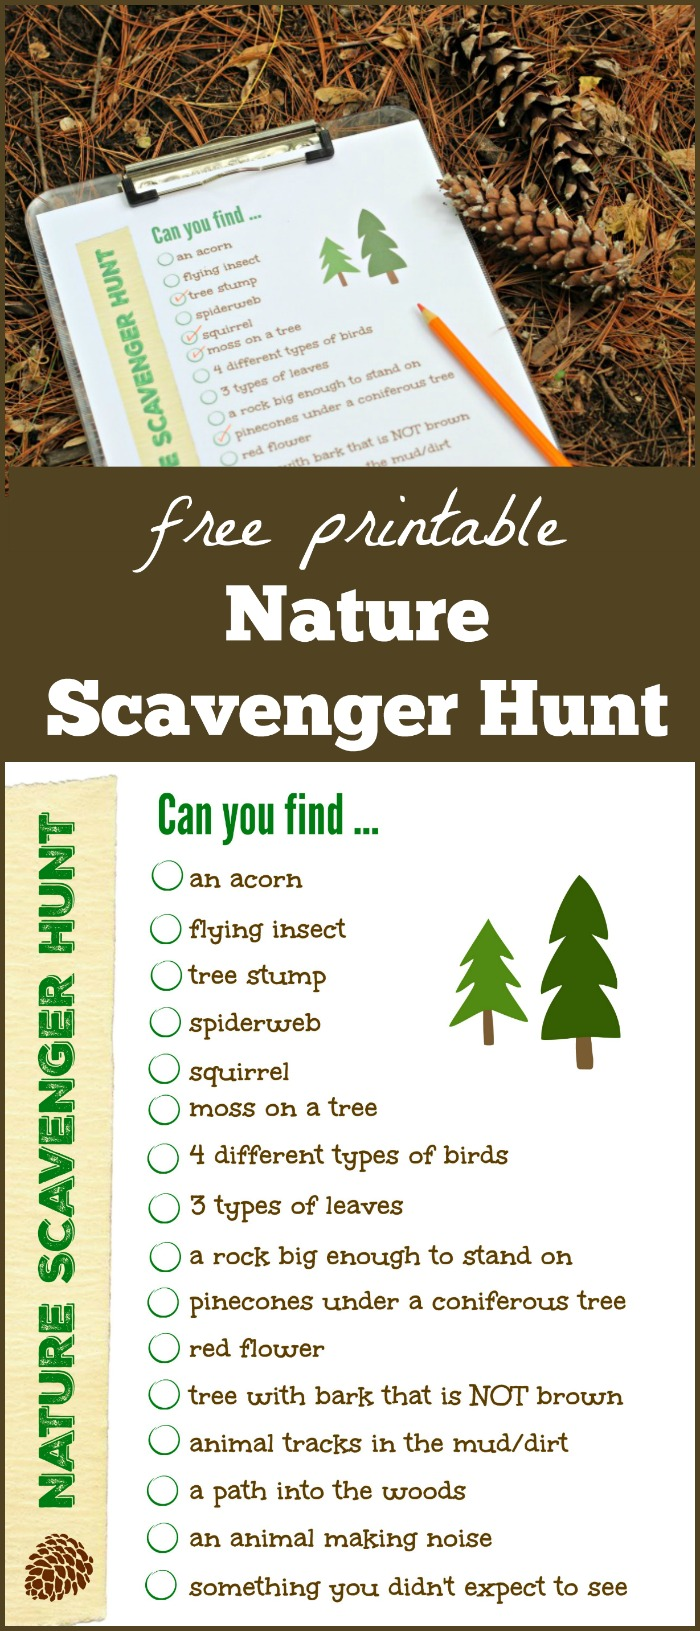 Nature Scavenger Hunt printable list